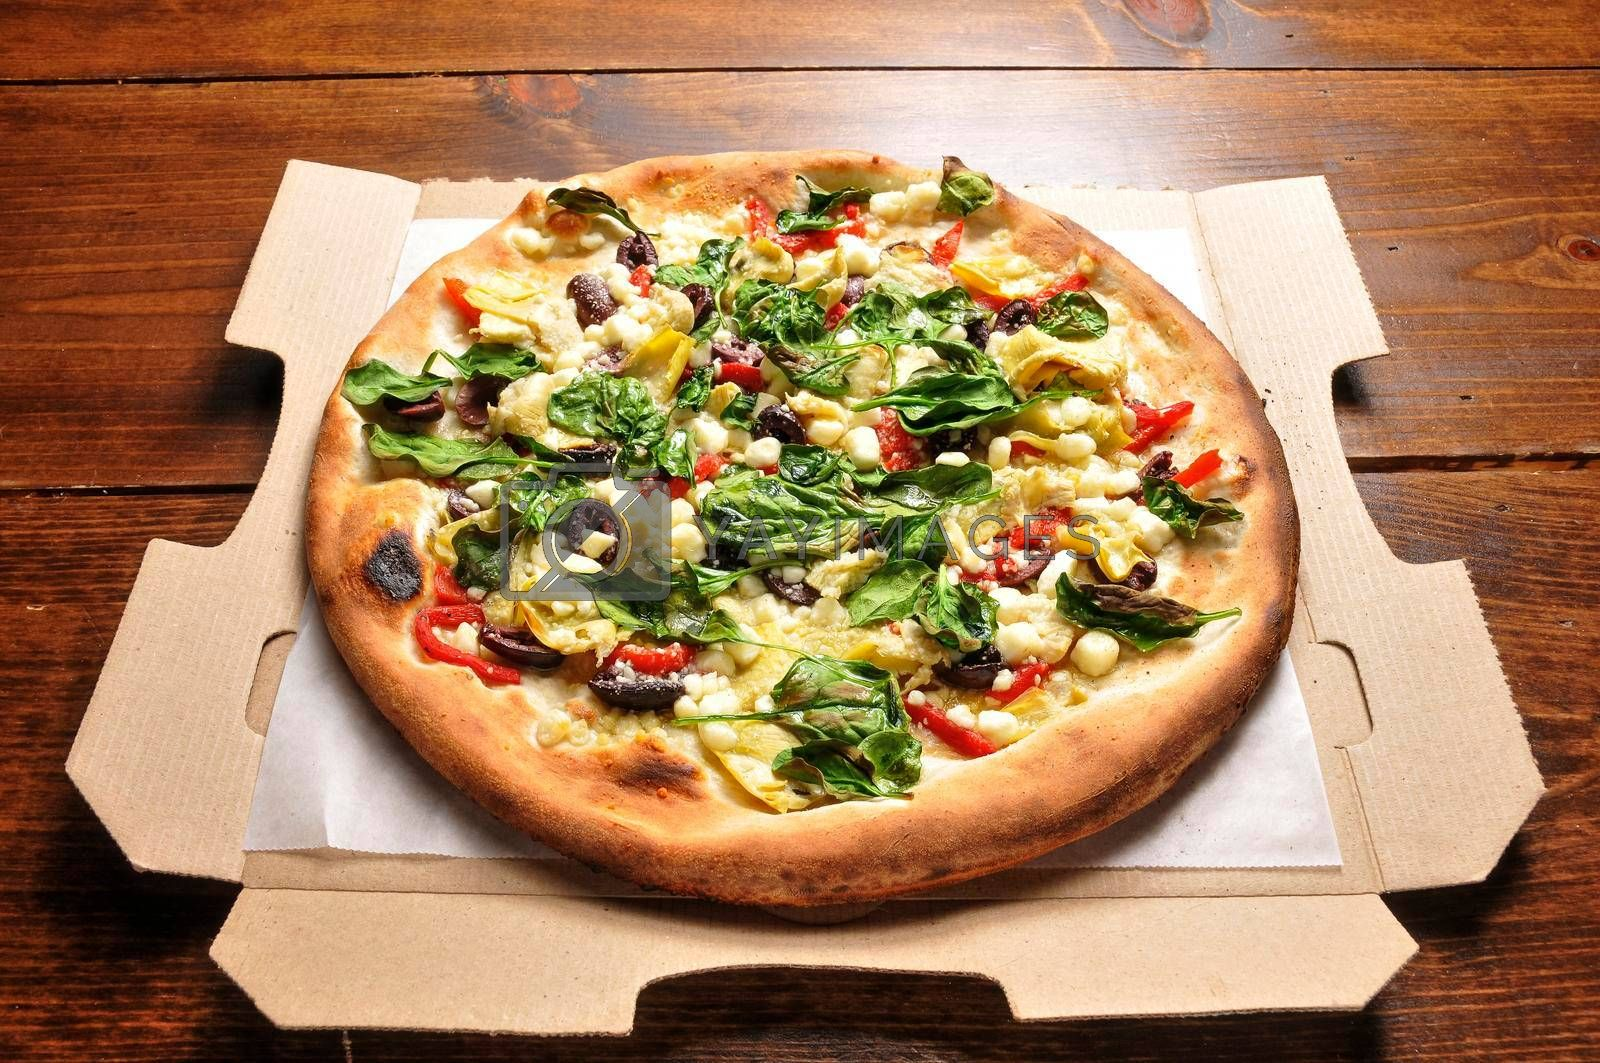 Delicious tomato sauce cheese covered hot and tasty pizza pie